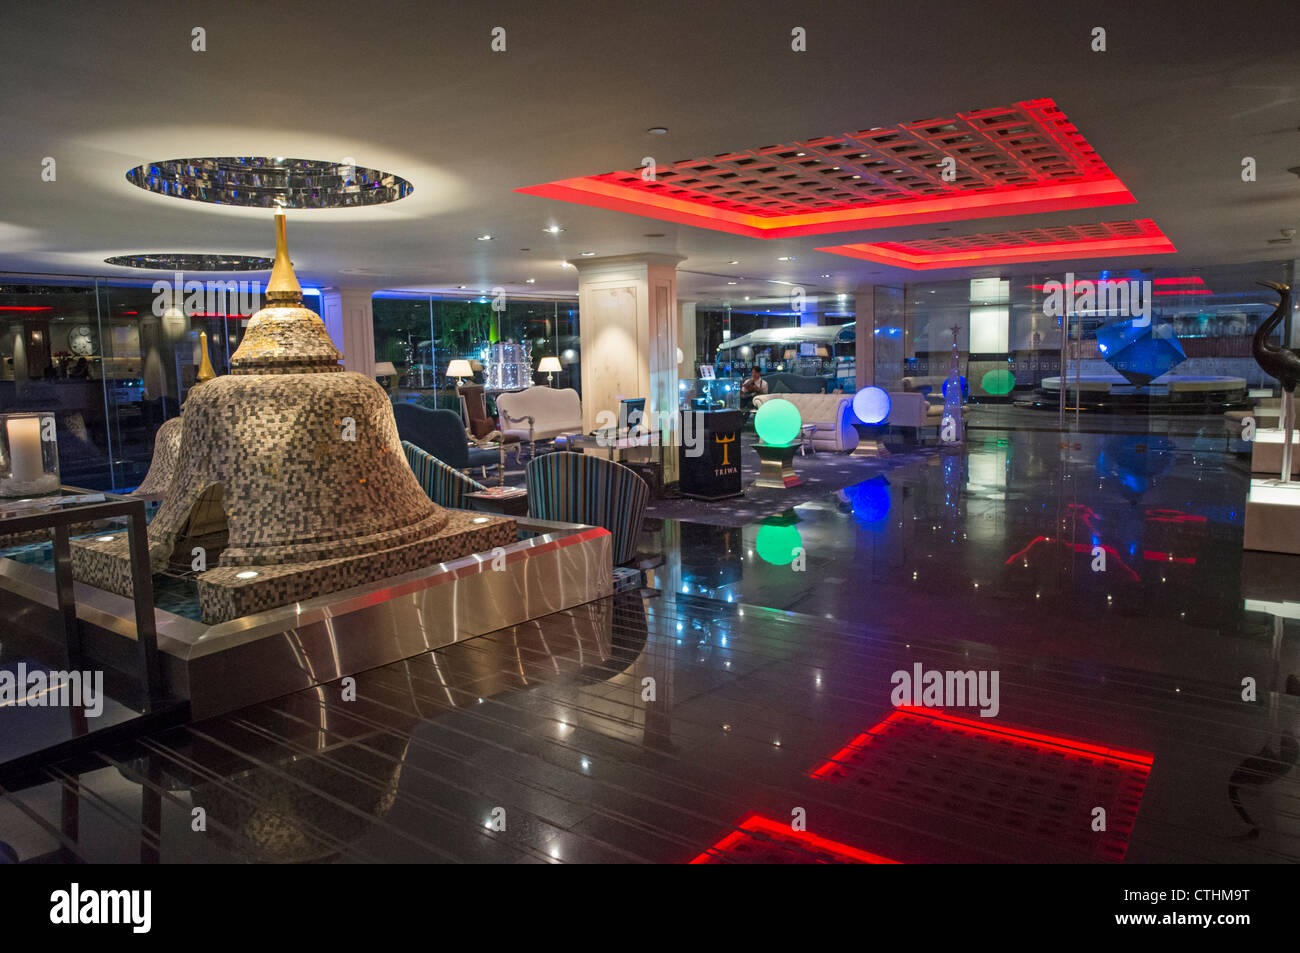 Dream Hotel, Lobby with Pagodas, Bangkok, Thailand Stock Photo